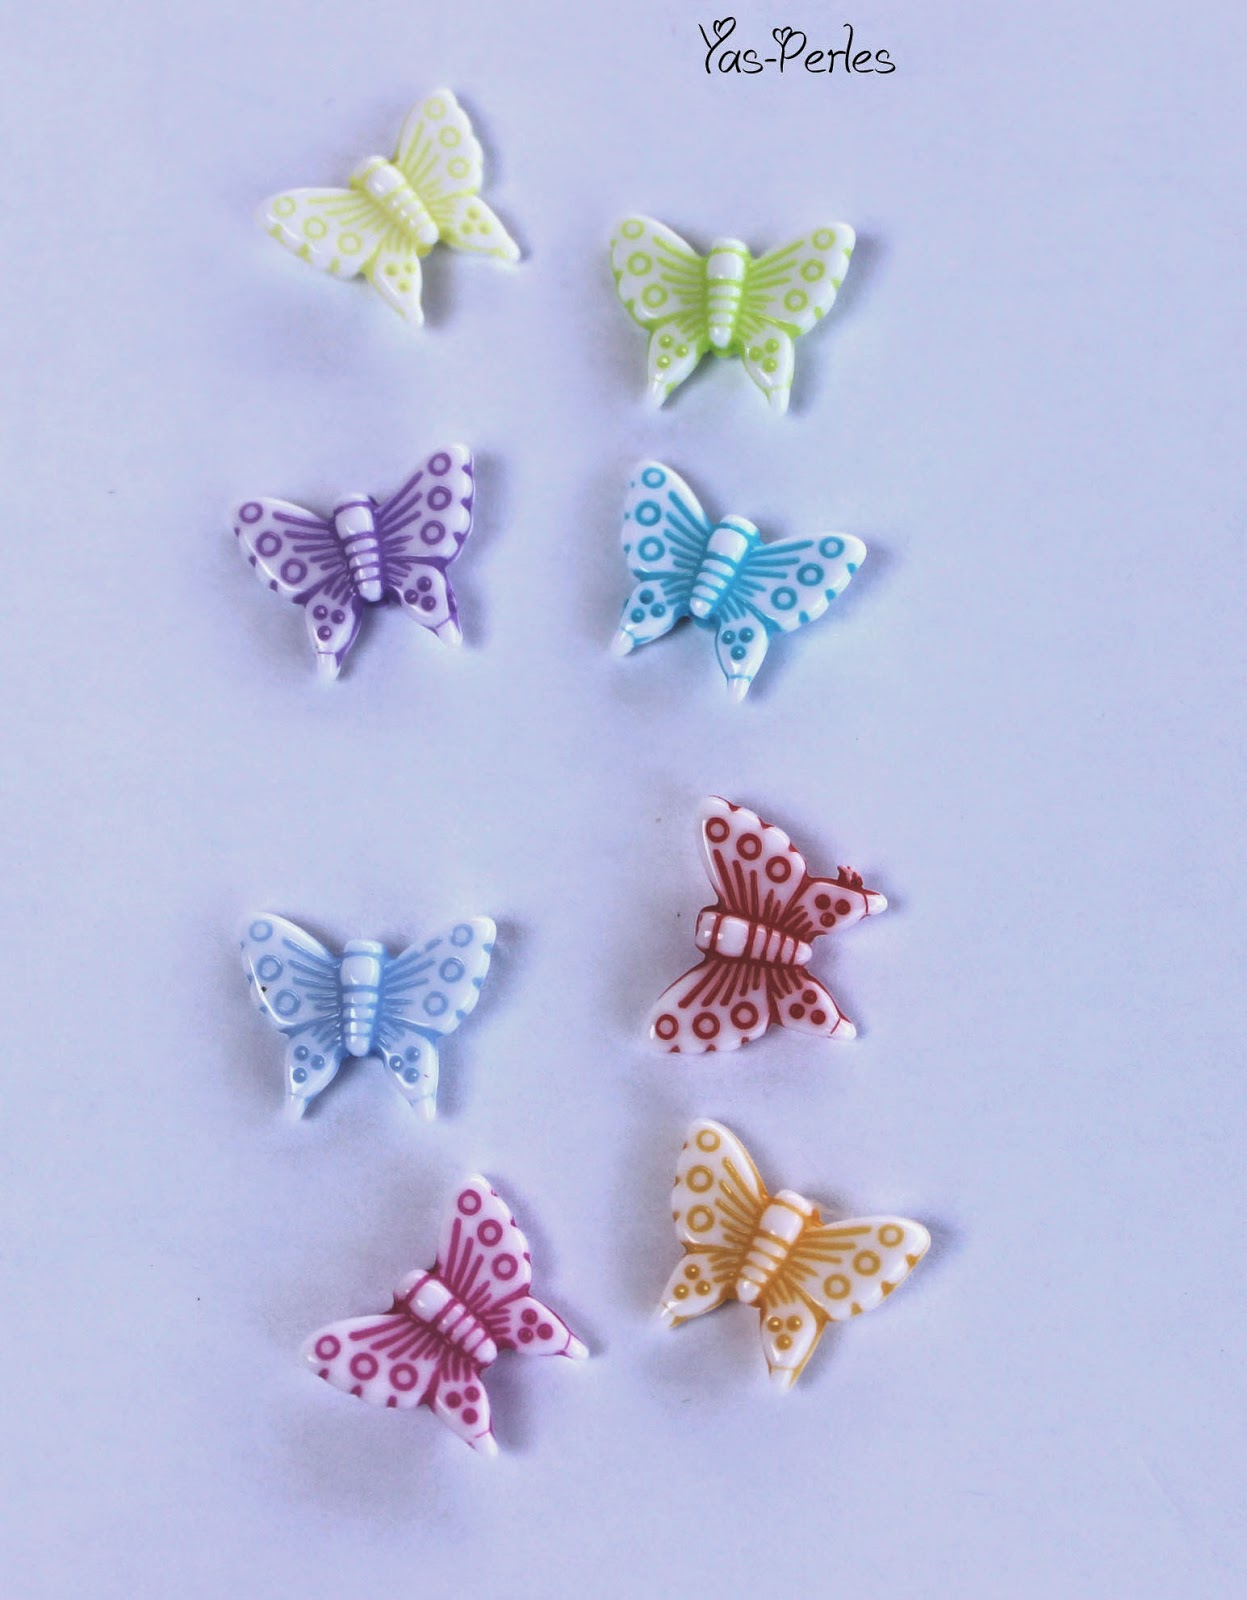 http://www.alittlemercerie.com/perles-synthetiques/fr_lot_perles_colorees_forme_papillon_x30_-3172045.html